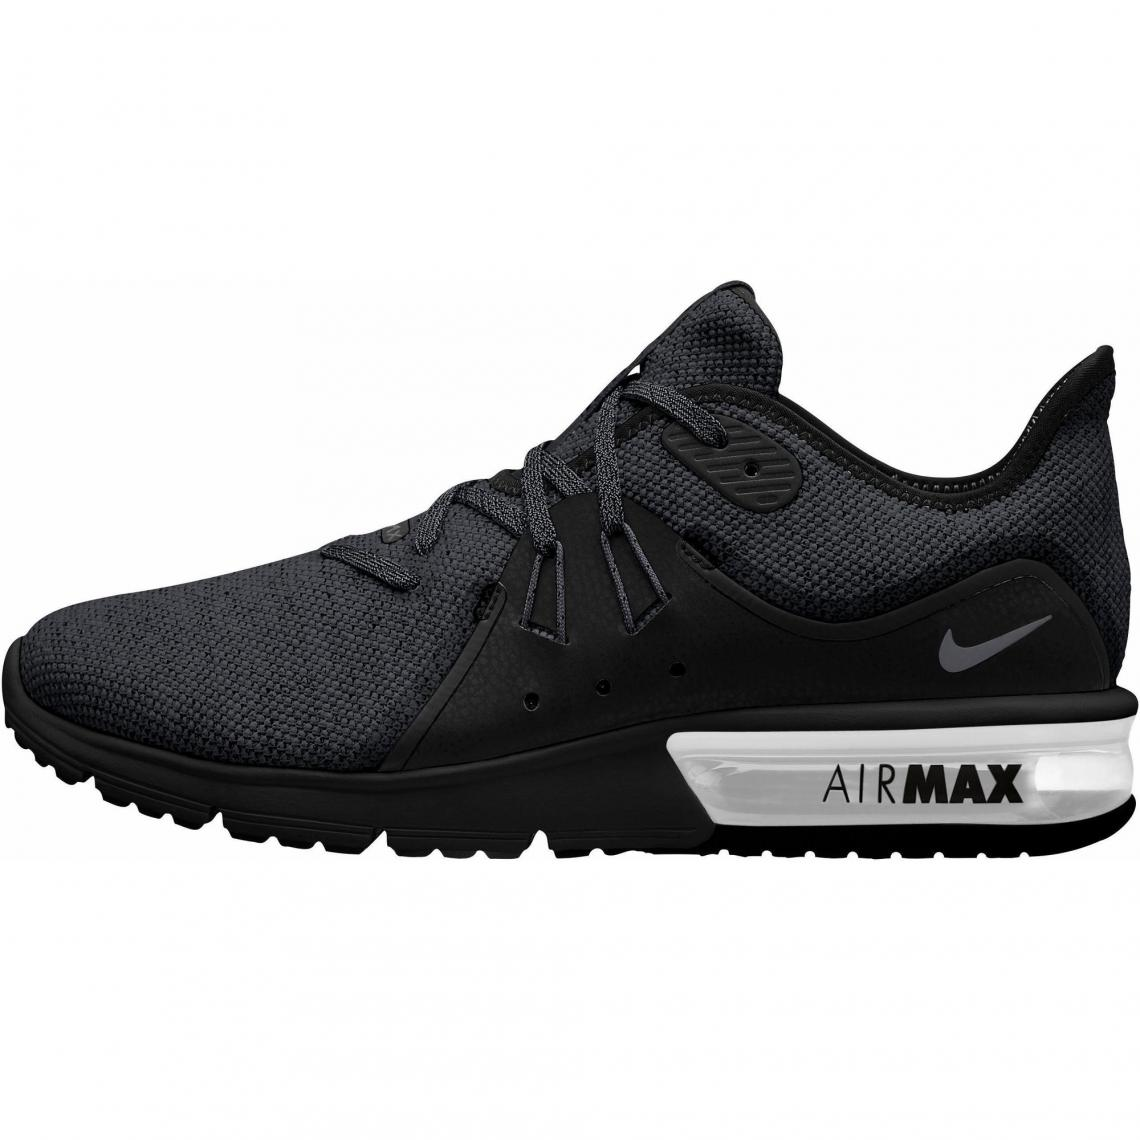 uk availability f8499 148d5 Sneakers running homme Air Max Sequent 3 NIKE - Noir - Blanc Nike Homme